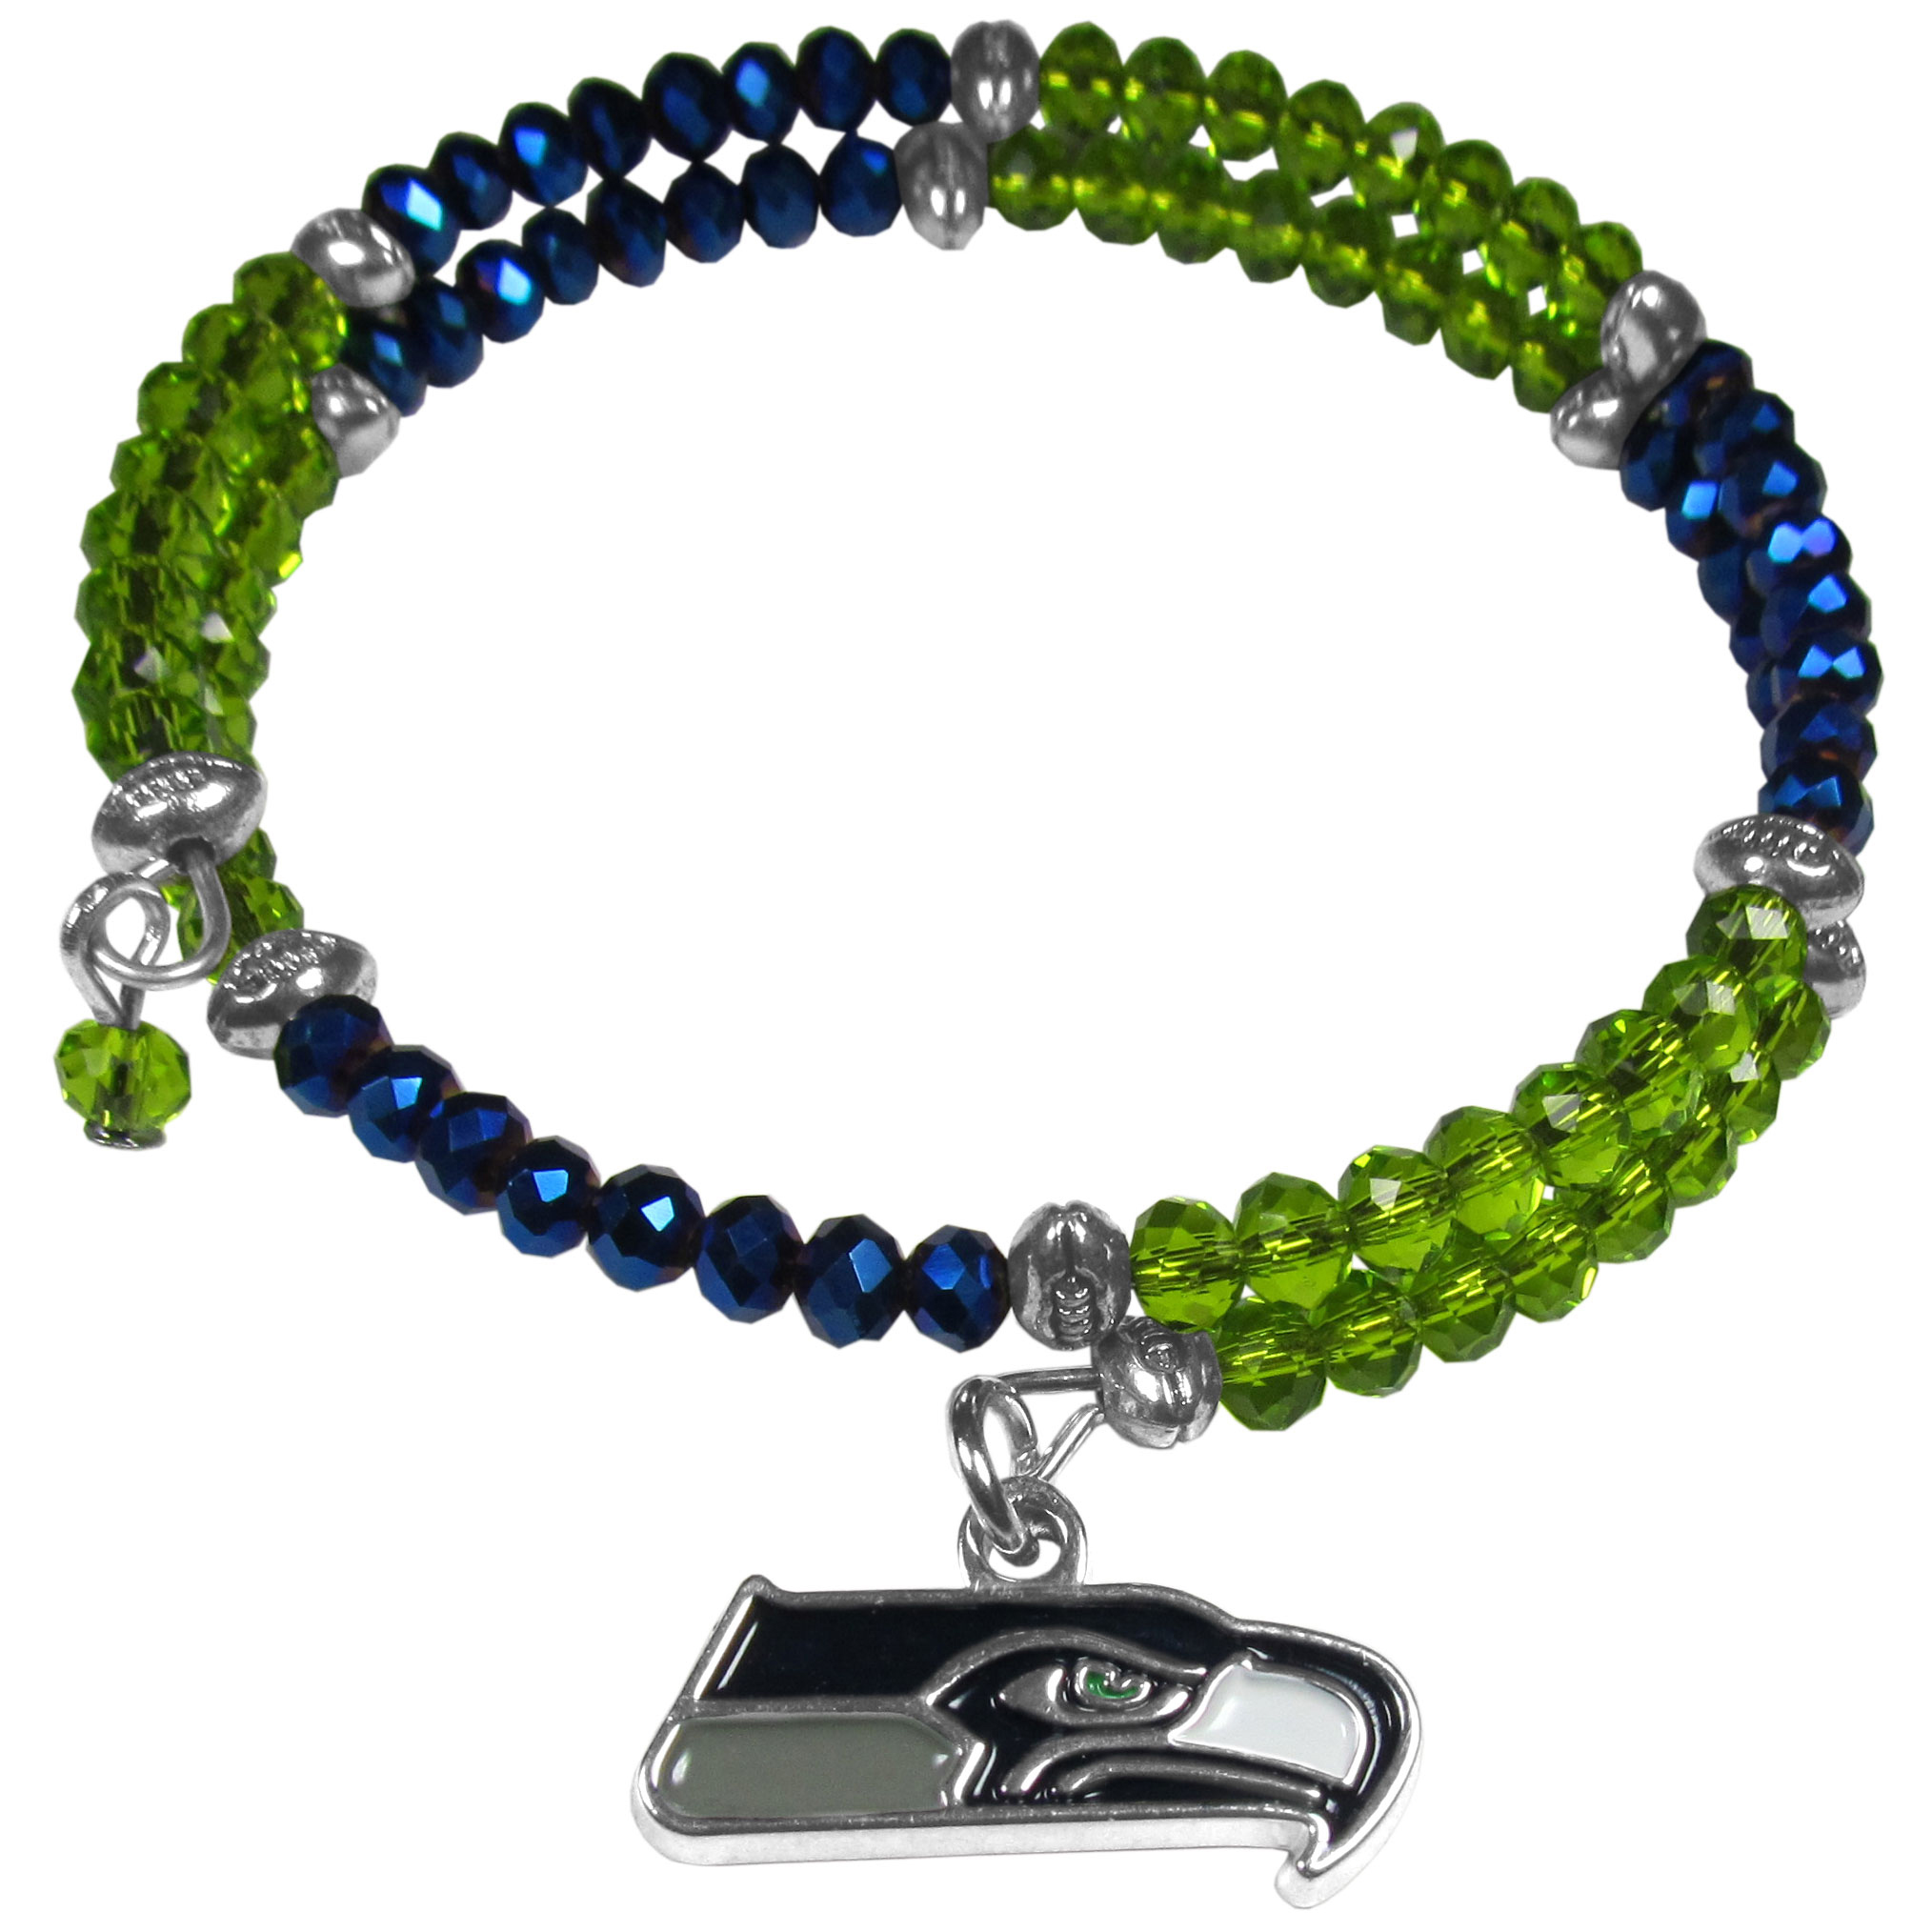 Seattle Seahawks Crystal Memory Wire Bracelet - Our Seattle Seahawks memory wire crystal bracelet is trendy way to show off your love of the game. The double wrap bracelet is completely covered in 4 mm crystals that are broken up with adorable football beads creating a designer look with a sporty twist. The bracelet features a fully cast, metal team charm that has expertly enameled team colors. This fashion jewelry piece is a must-have for the die-hard fan that chic look that can dress up any outfit.